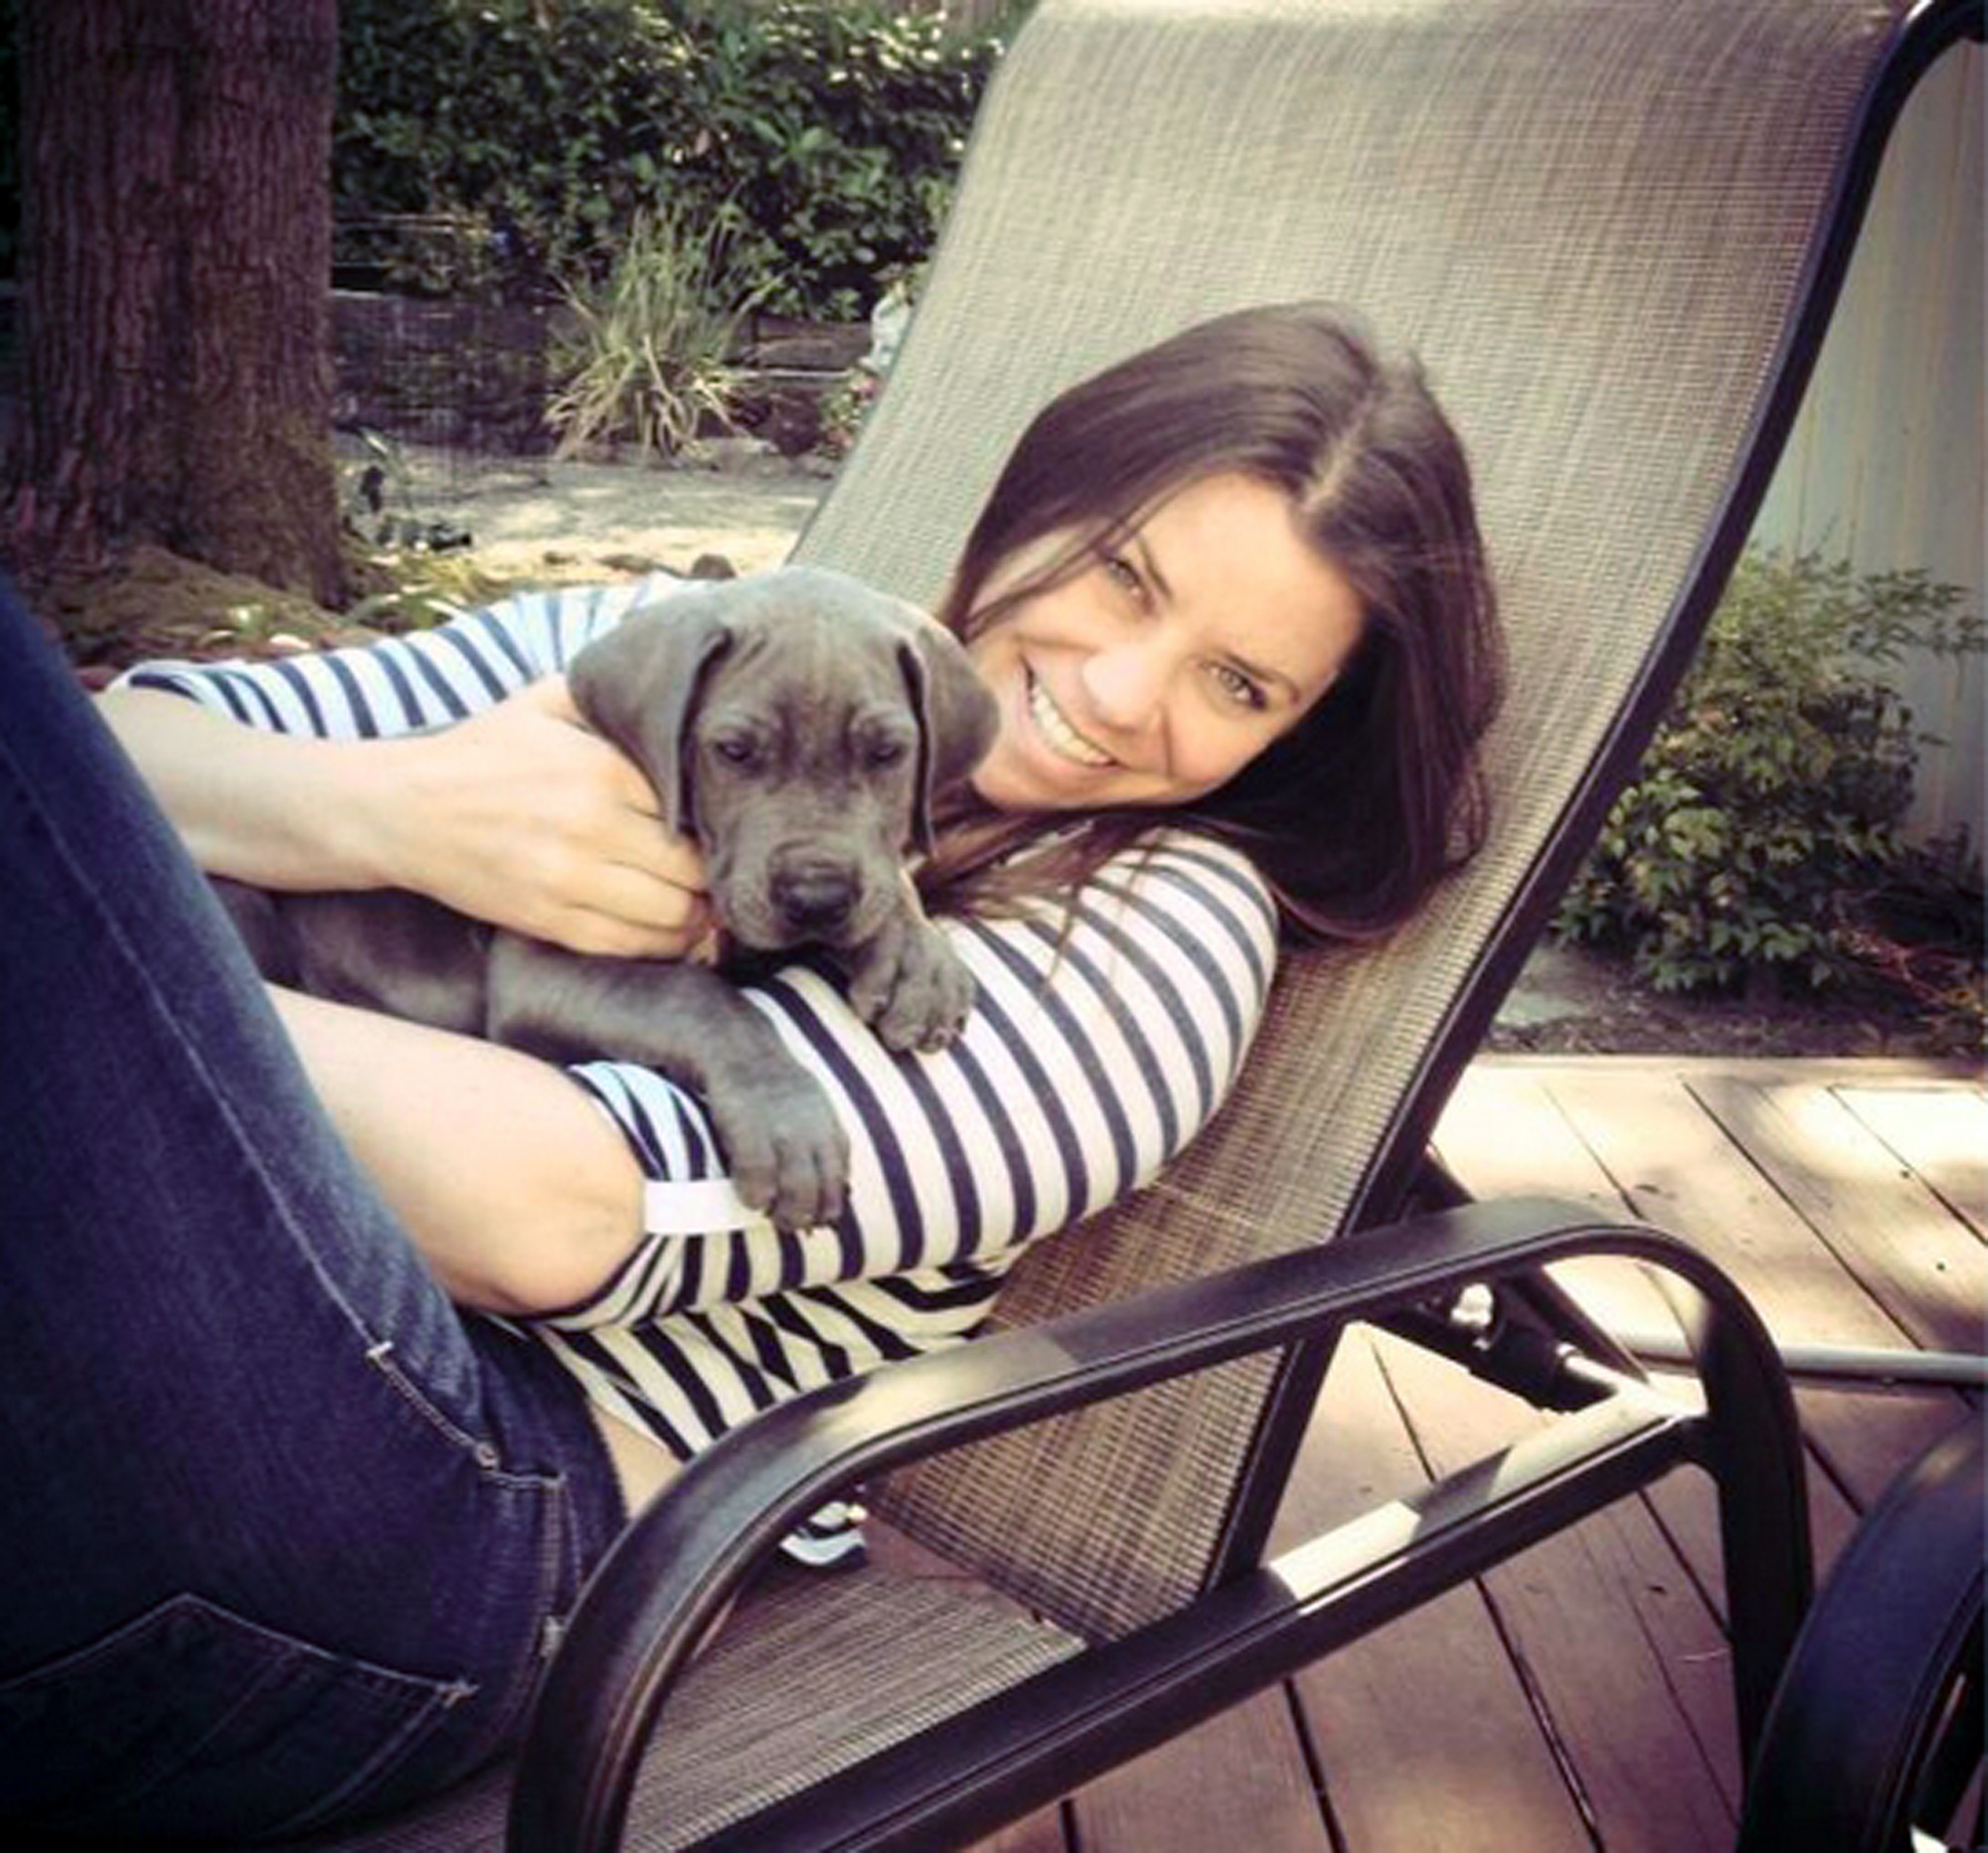 Brittany Maynard, a 29-year-old former teacher, has become the new face of the Death With Dignity movement.